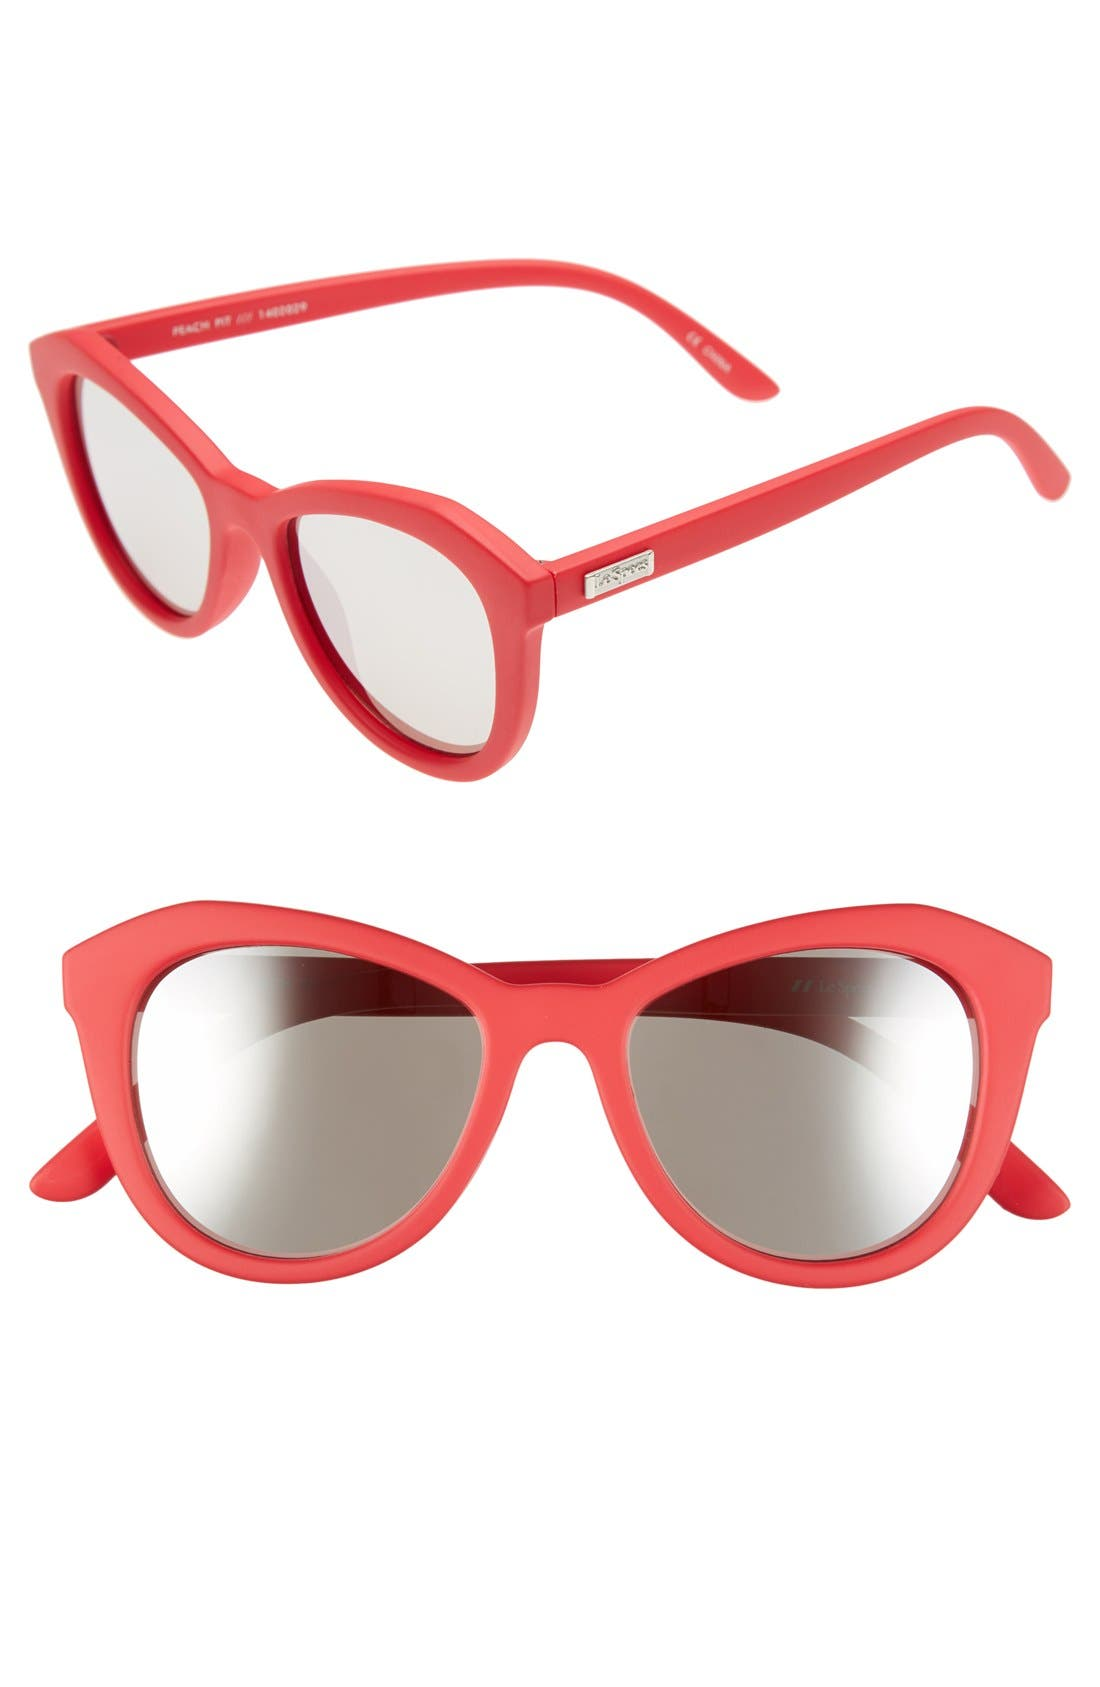 Alternate Image 1 Selected - Le Specs 'Peach Pit' 52mm Cat Eye Sunglasses